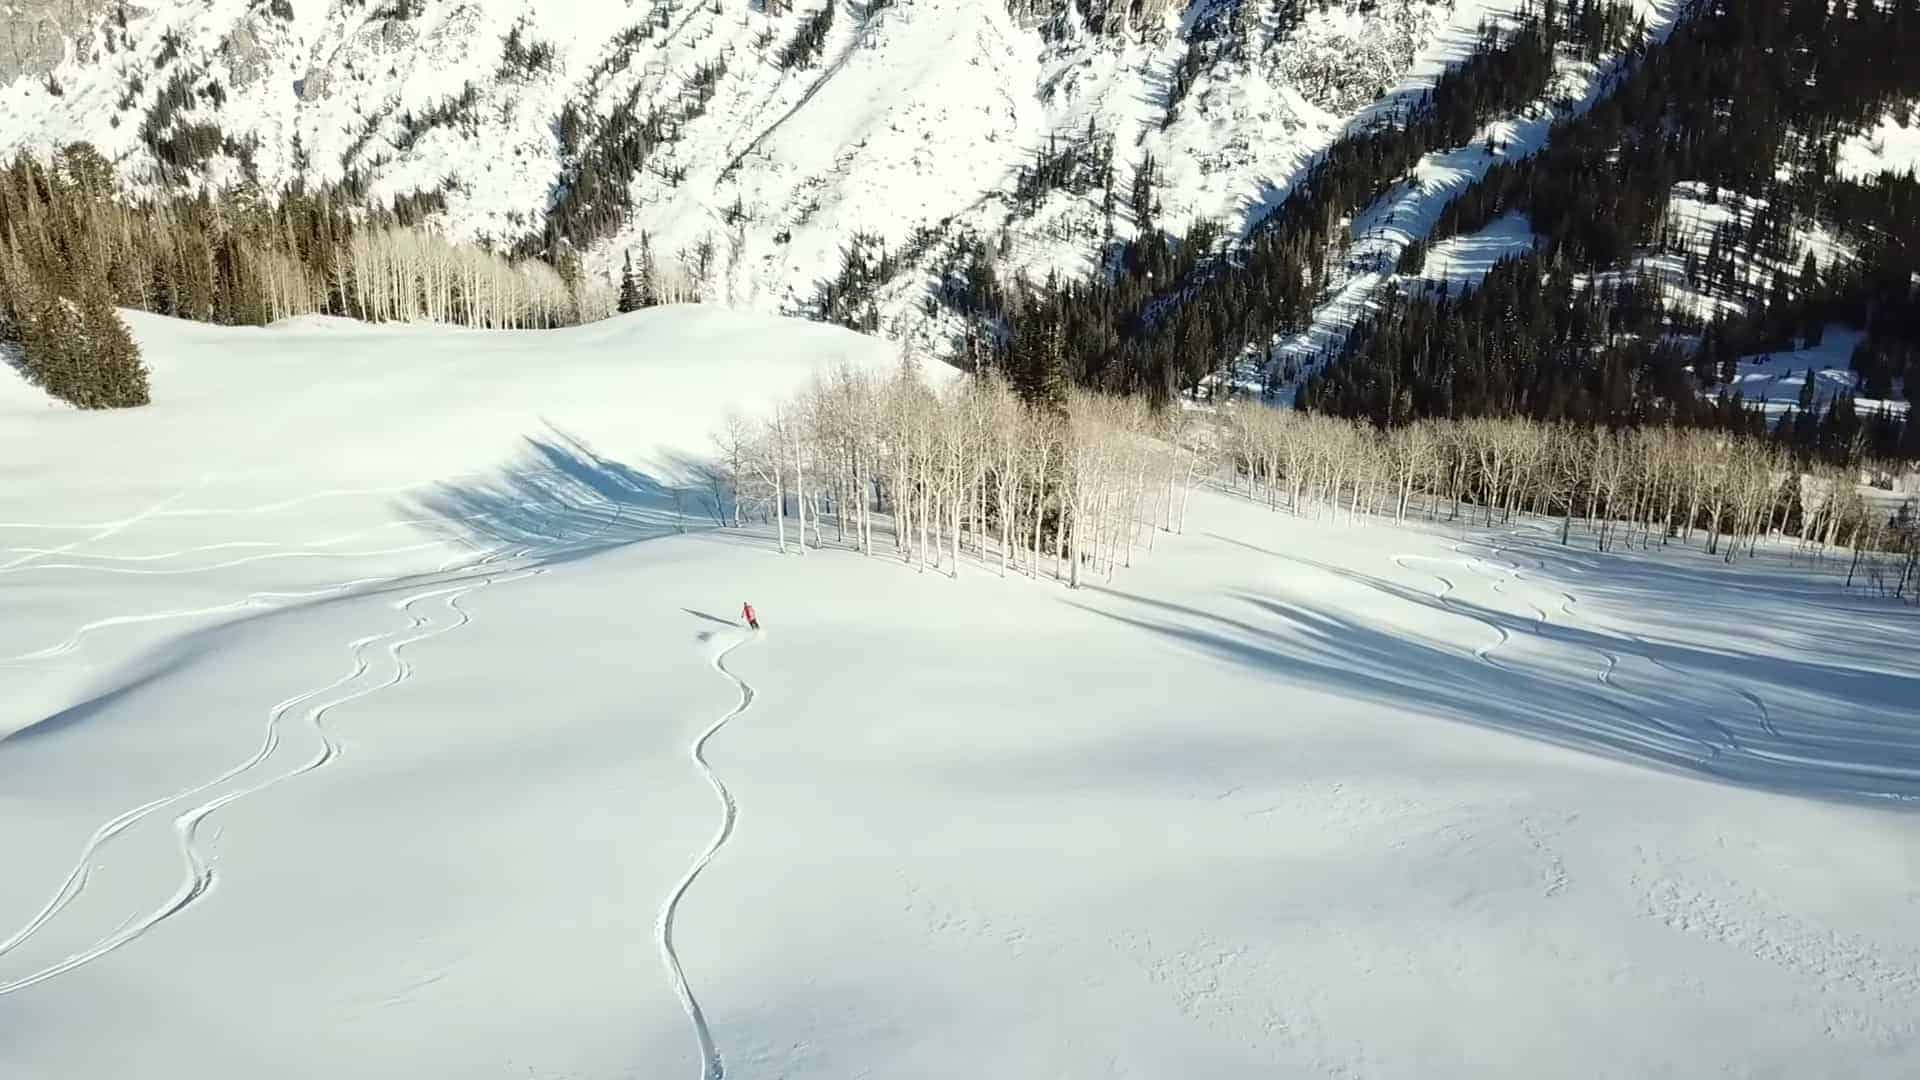 Backcountry Skiing Inspired Summit (4)